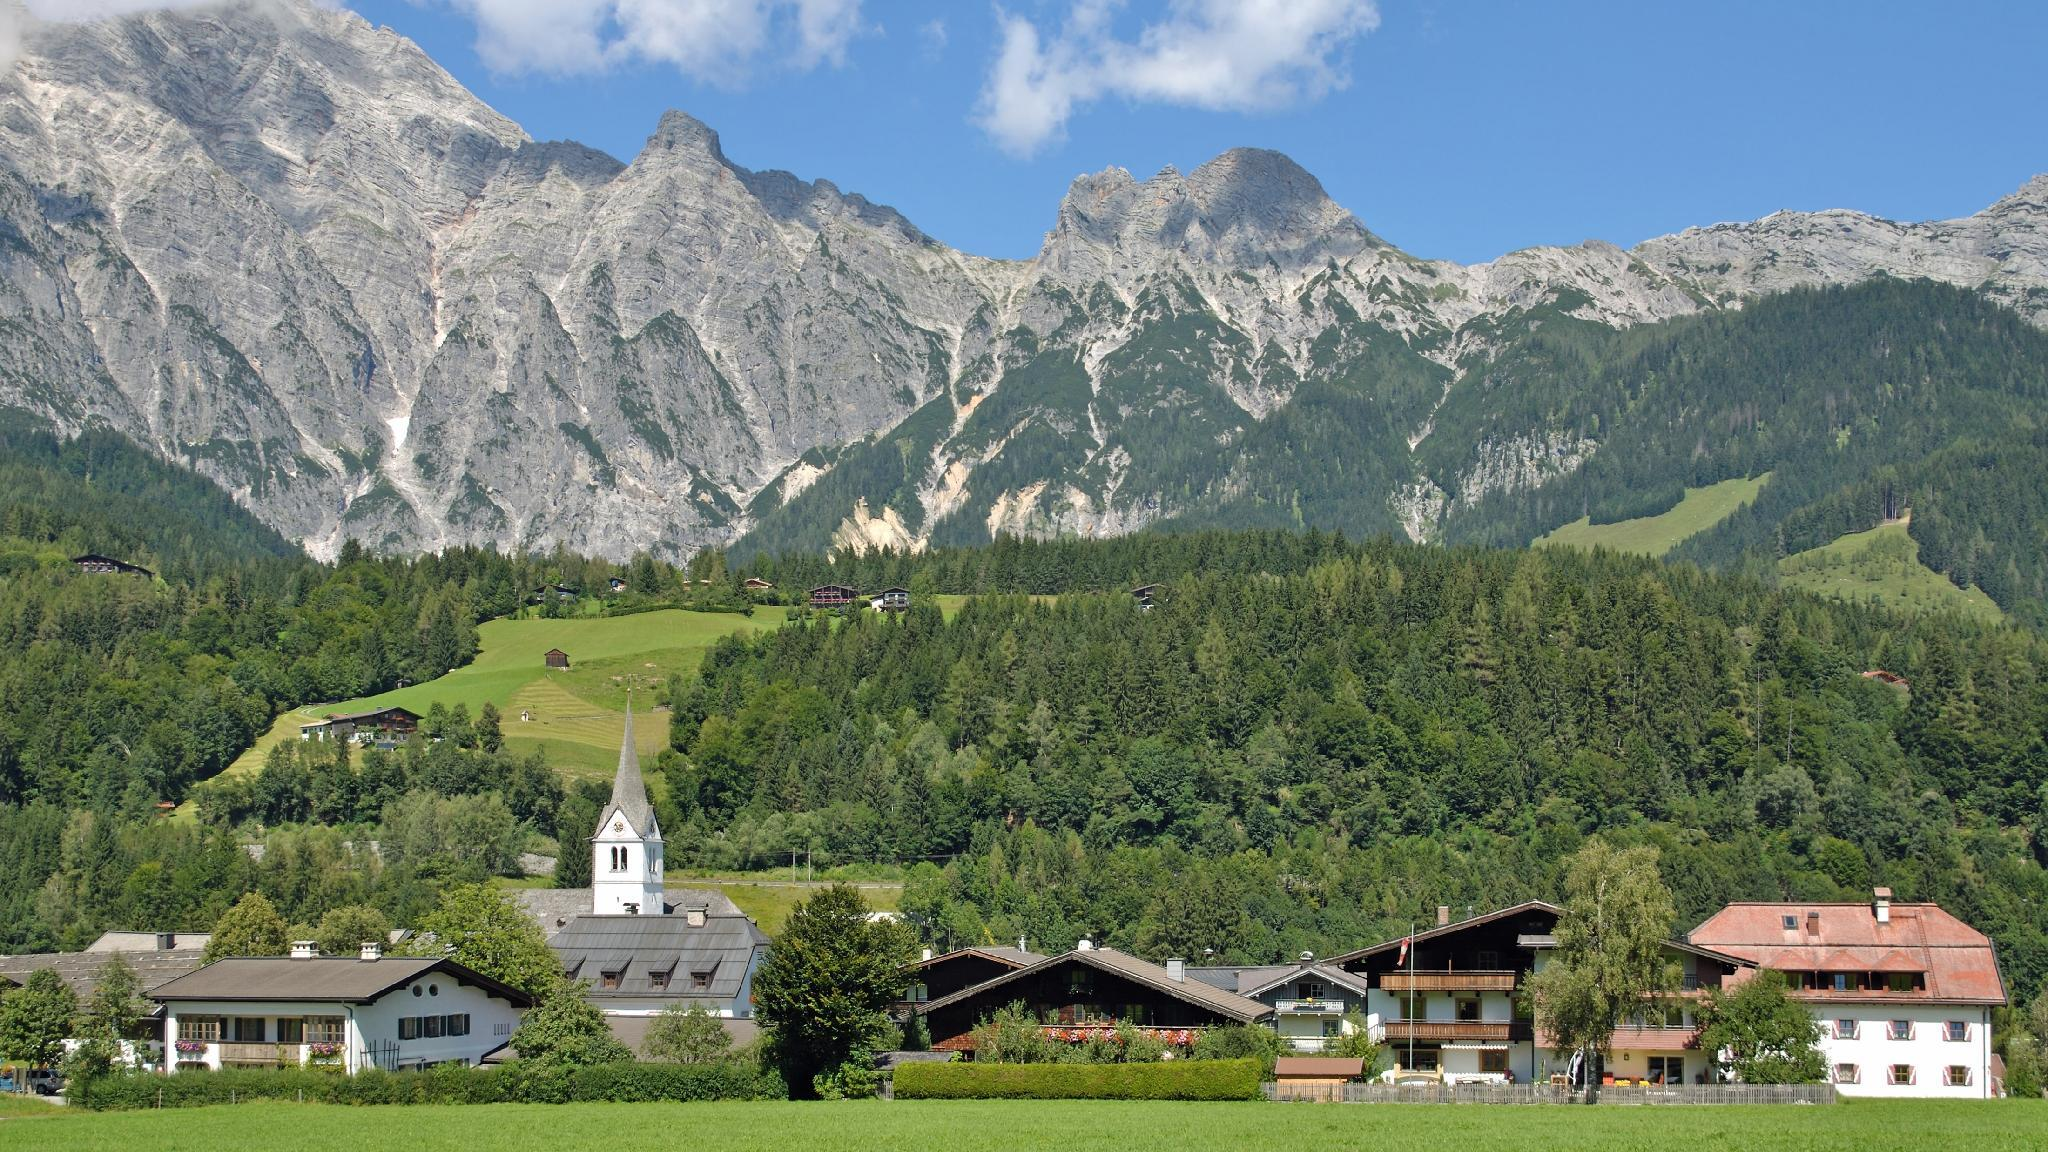 10 Best Leogang Hotels Hd Photos Reviews Of Hotels In